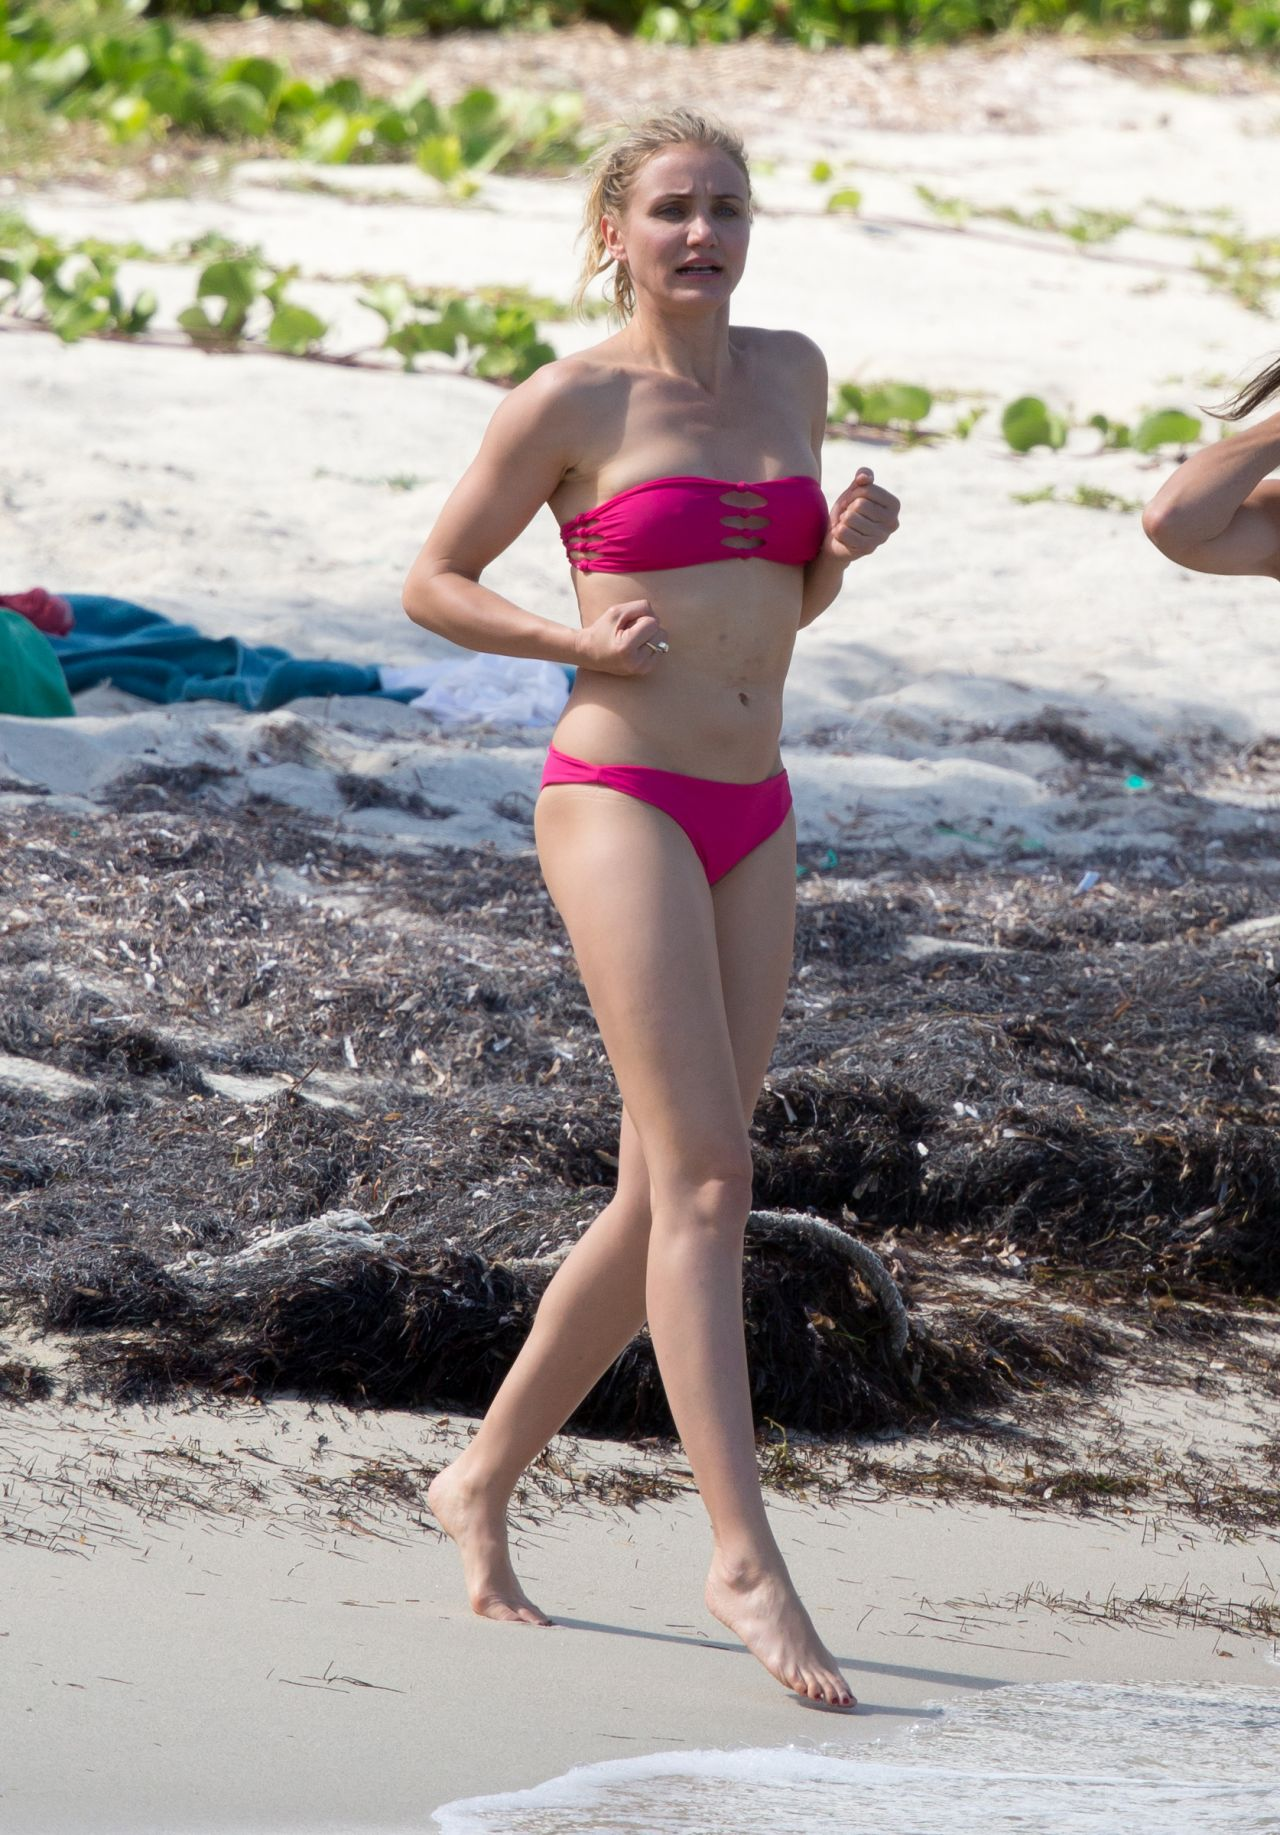 Cameron Diaz in a Bikini in the Caribbean - March 2014